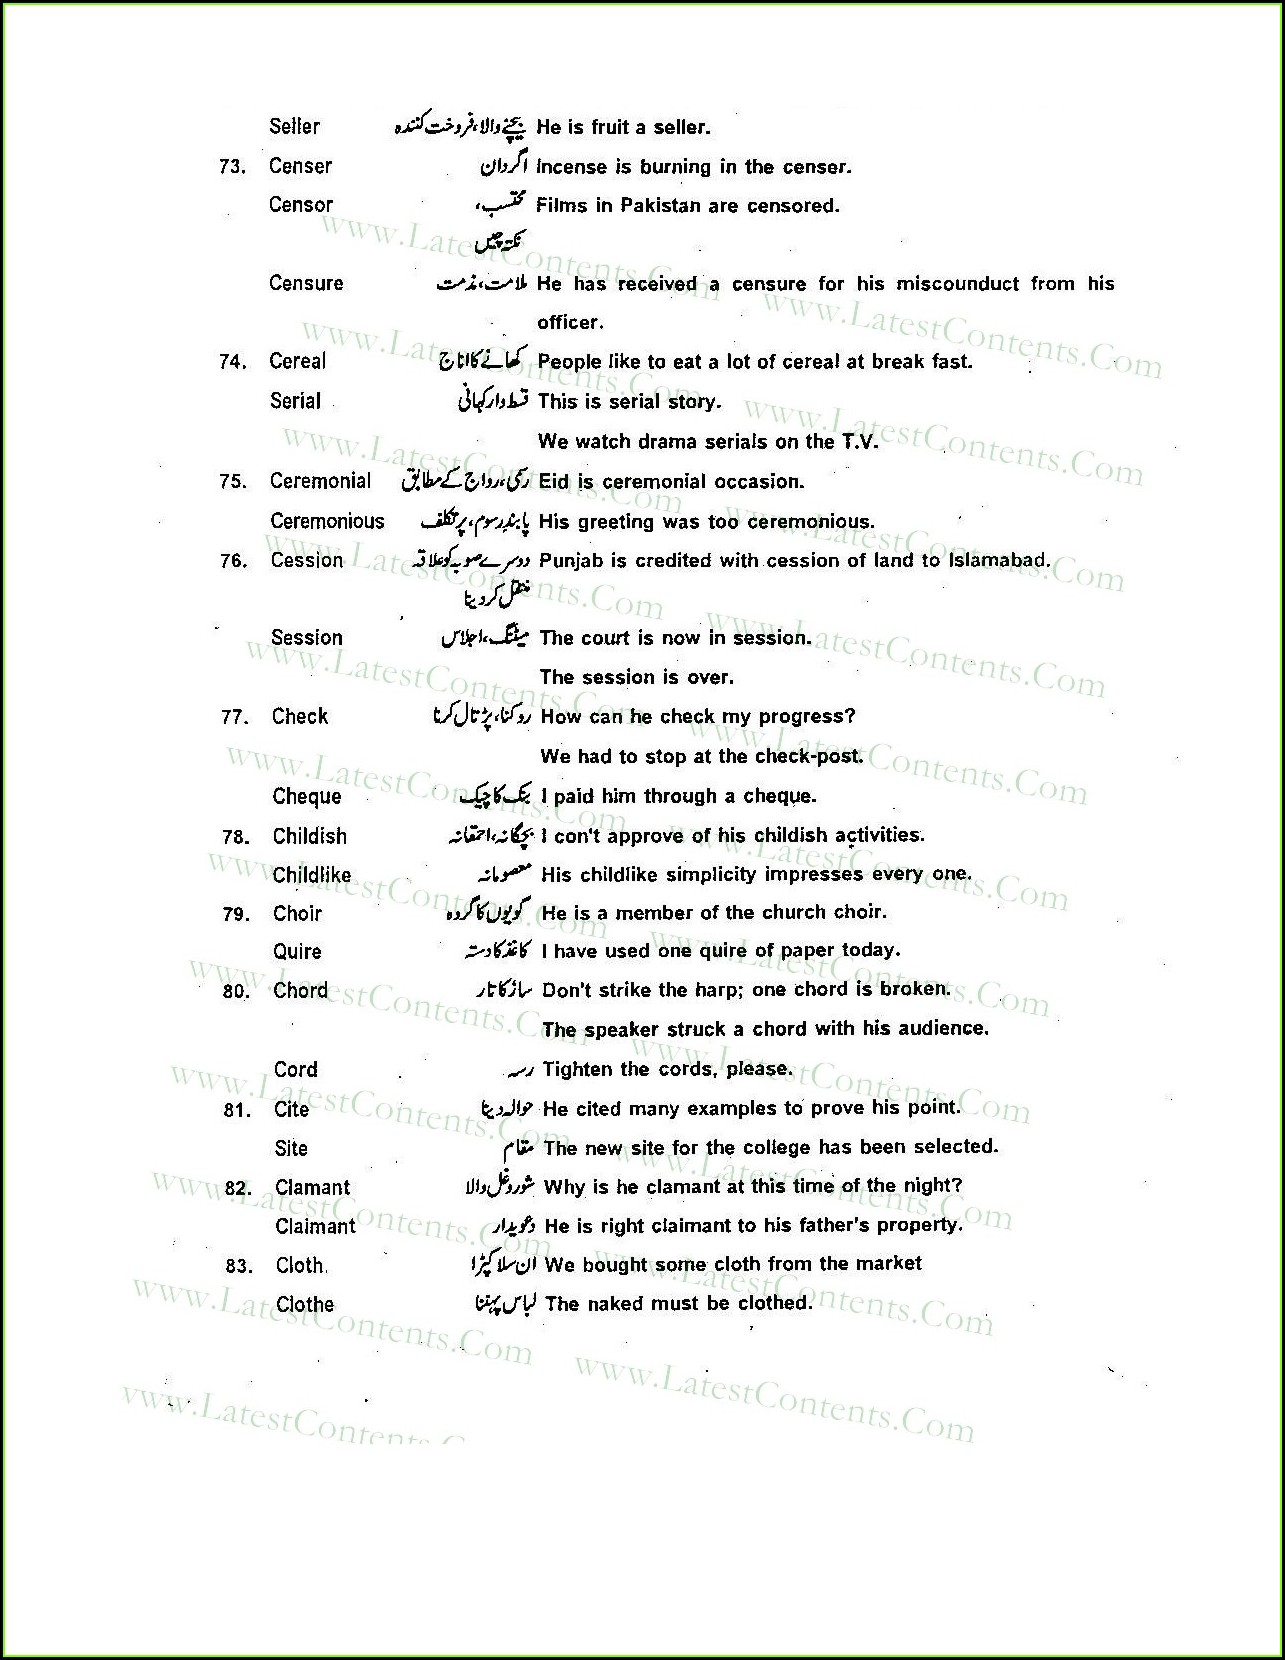 Commonly Confused Words Worksheet Answers